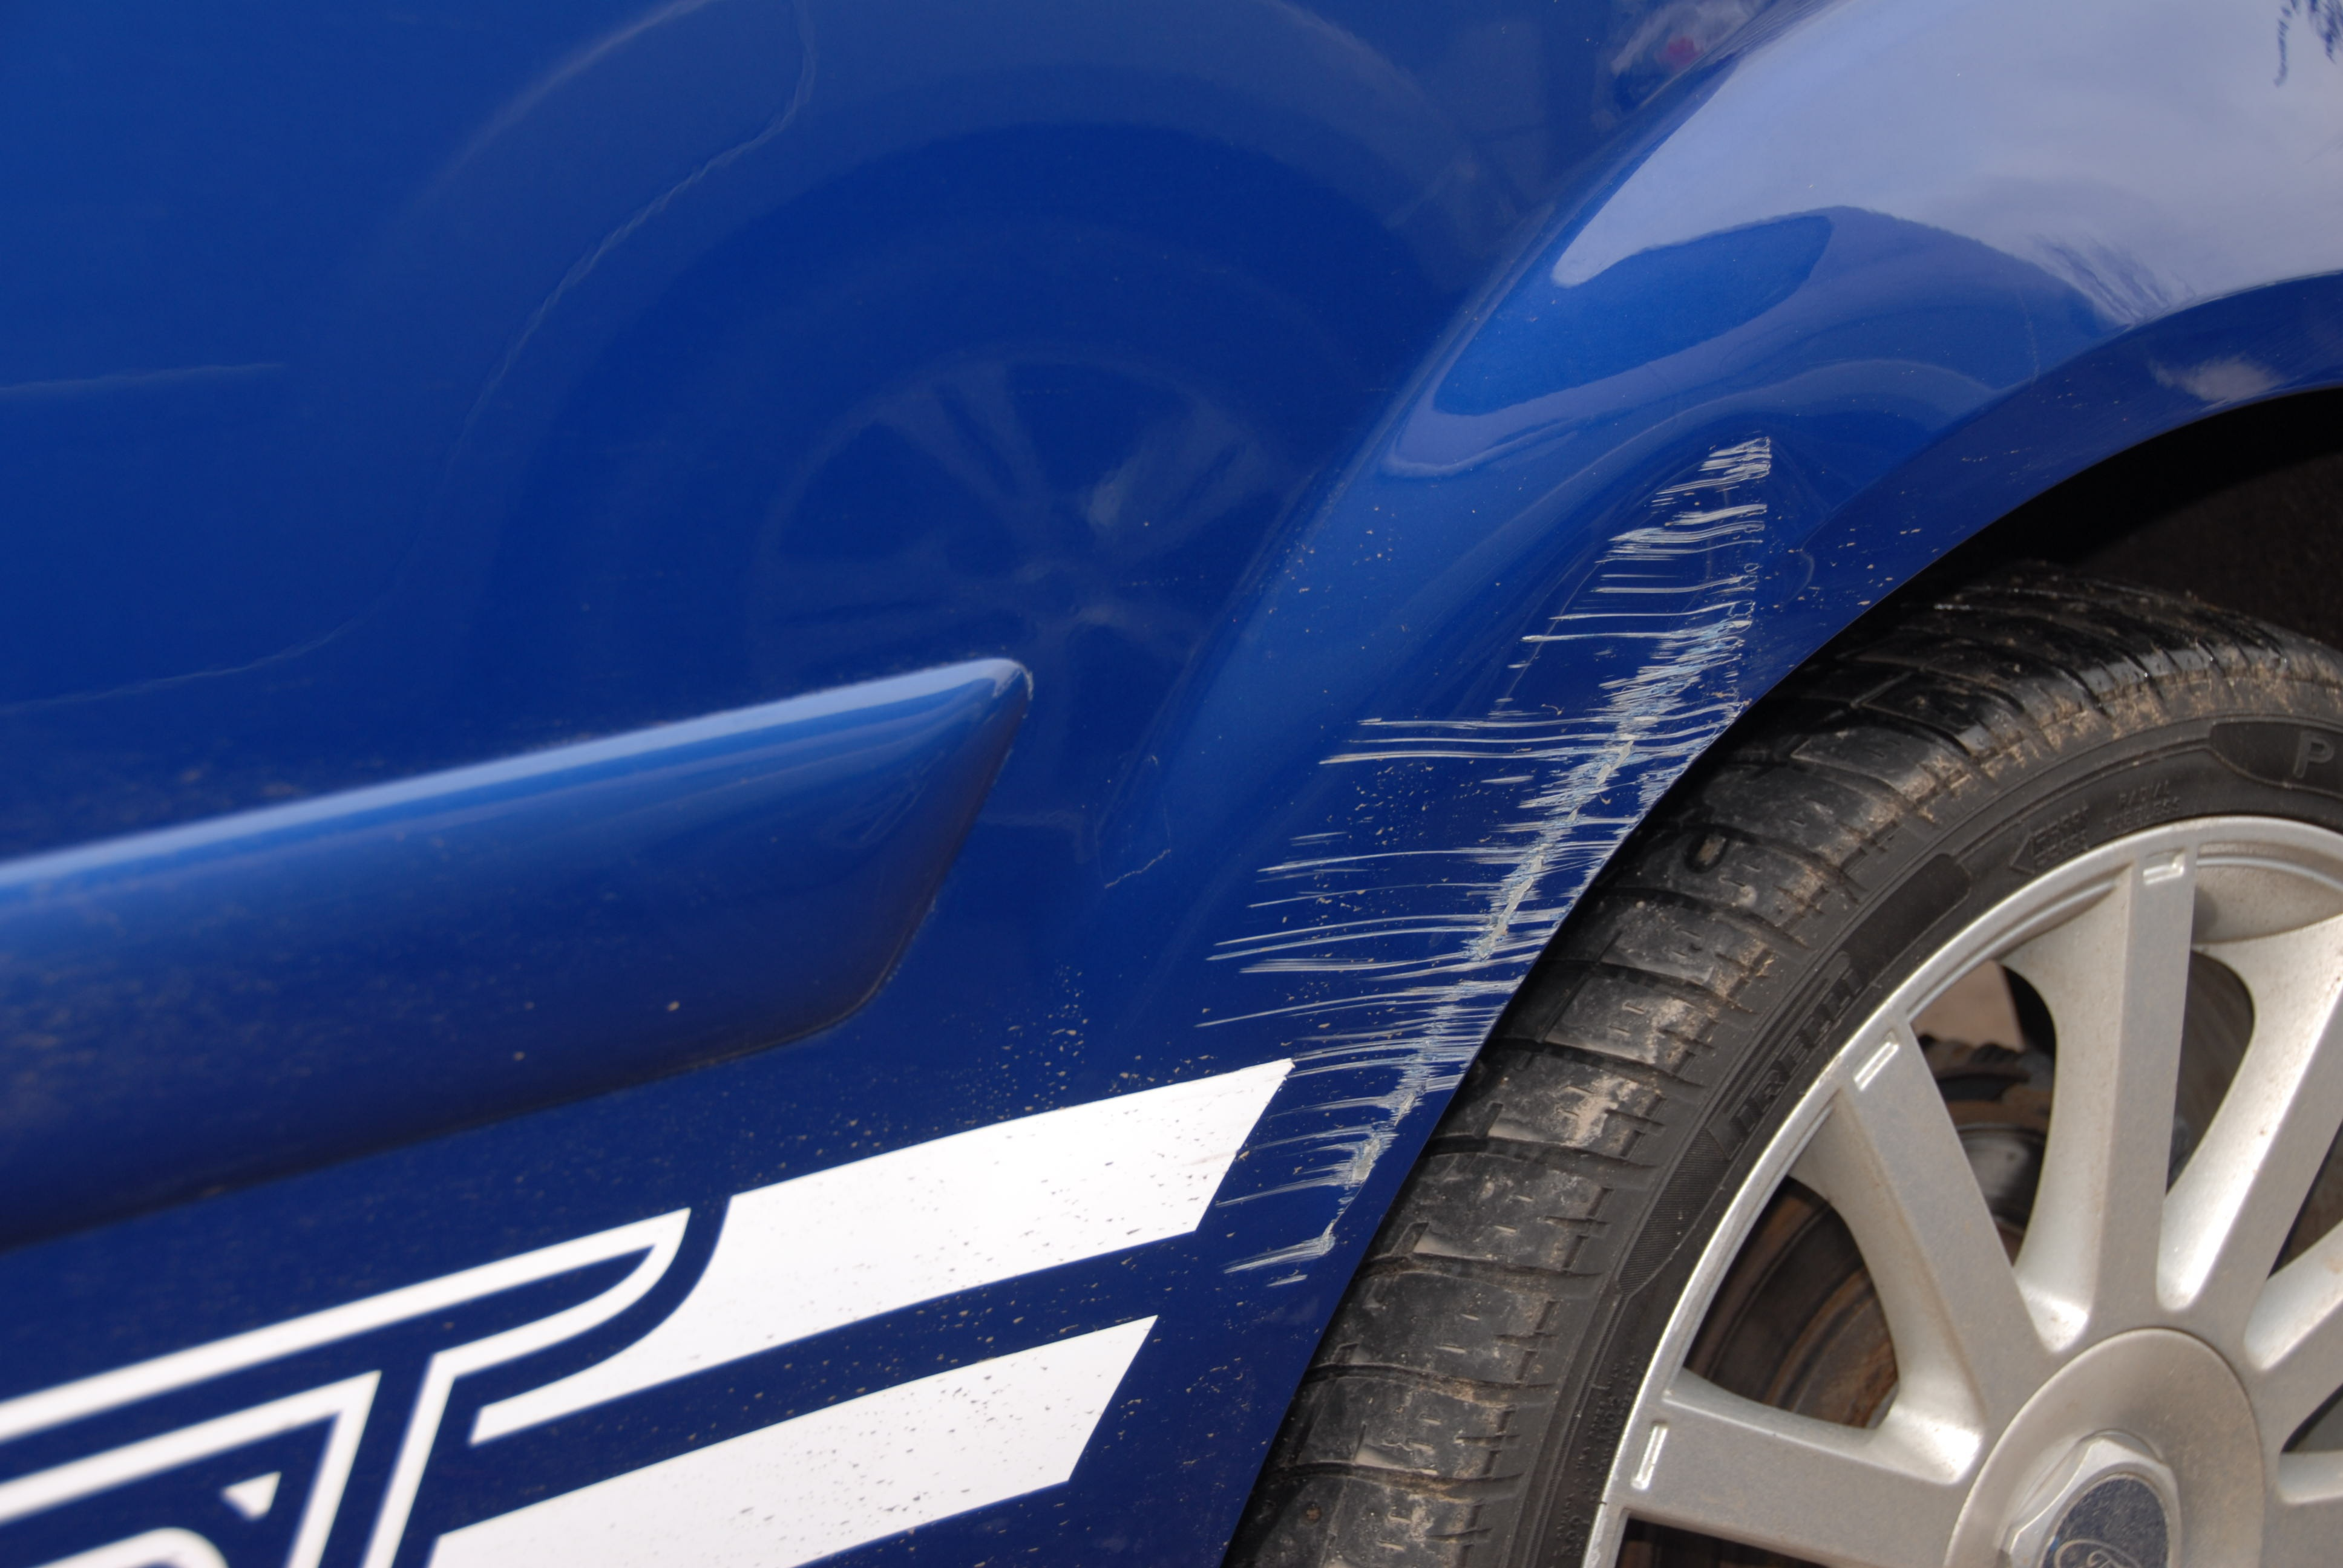 How To Get Rid Of Paint Scrapes On A Car